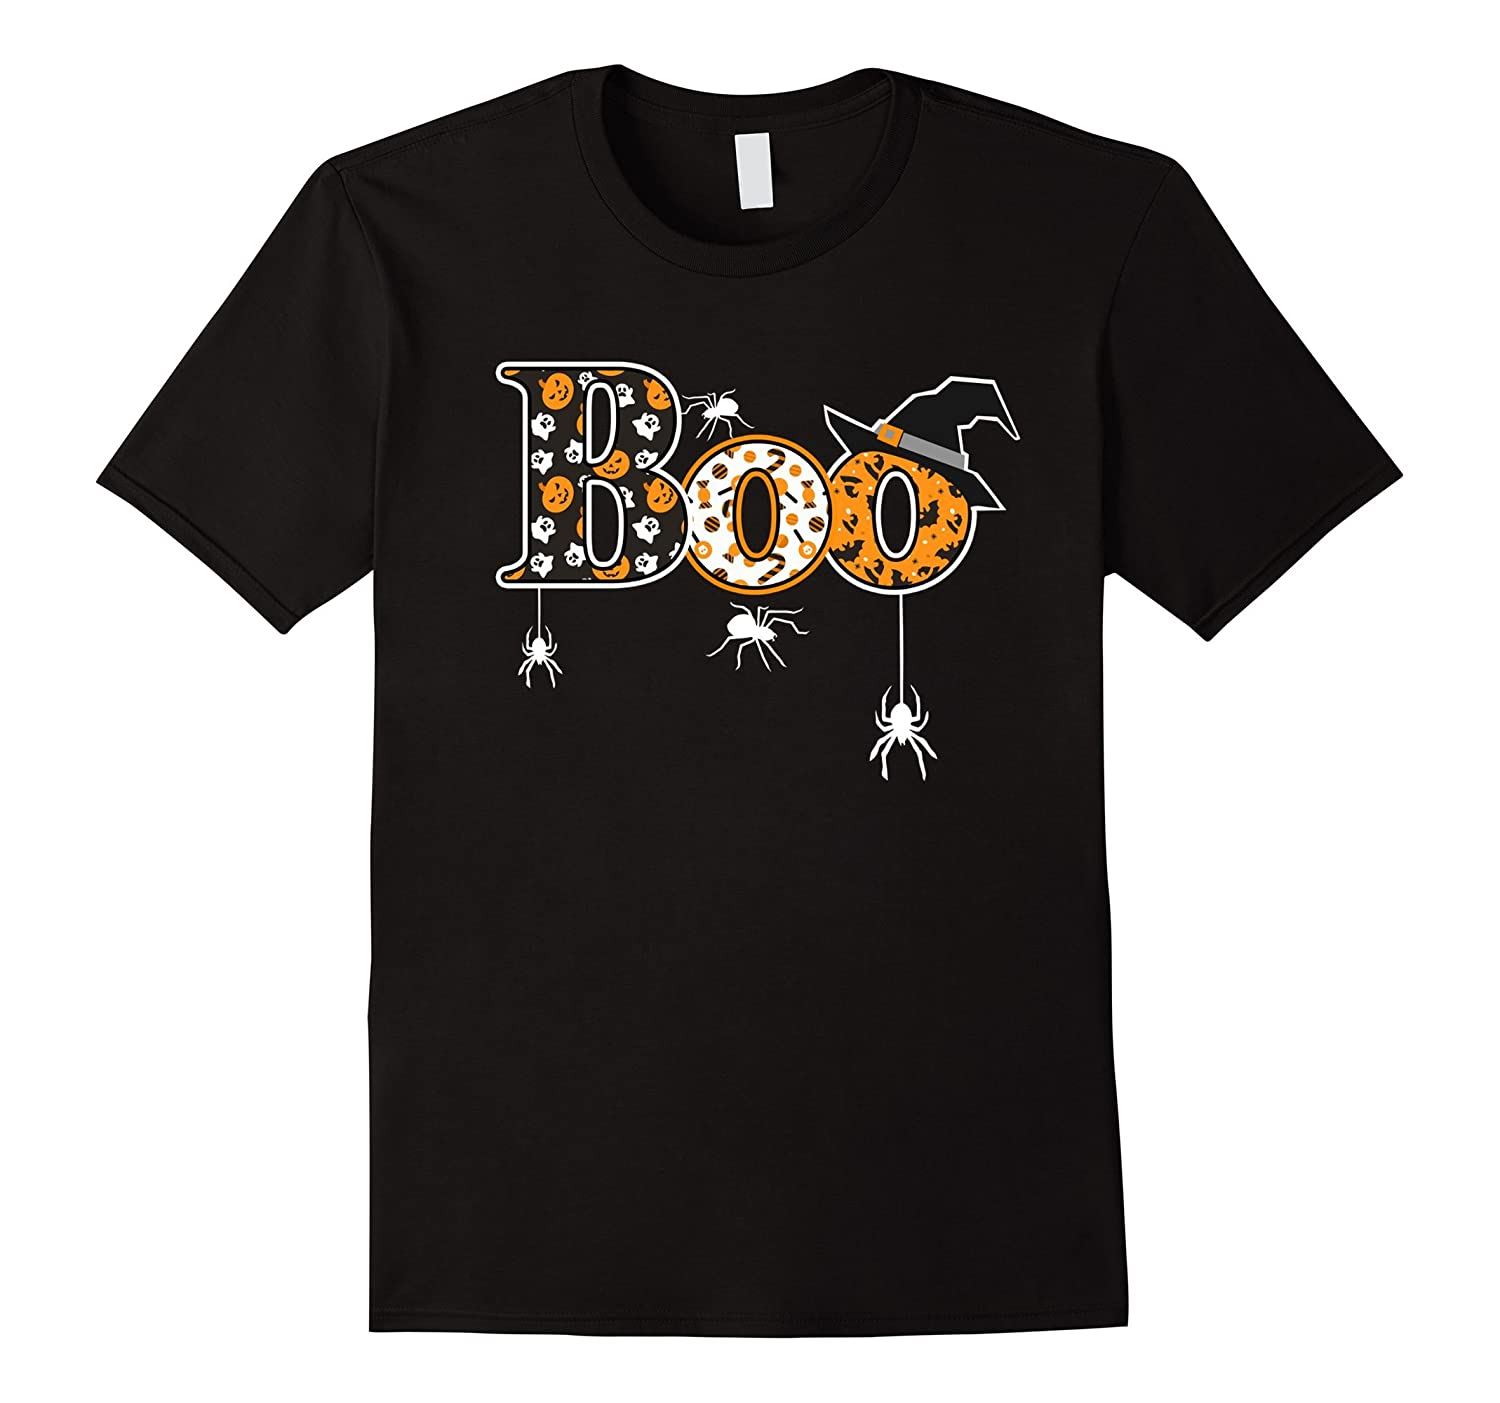 Boo Halloween T-Shirt With Spiders And Witch Hat-T-Shirt